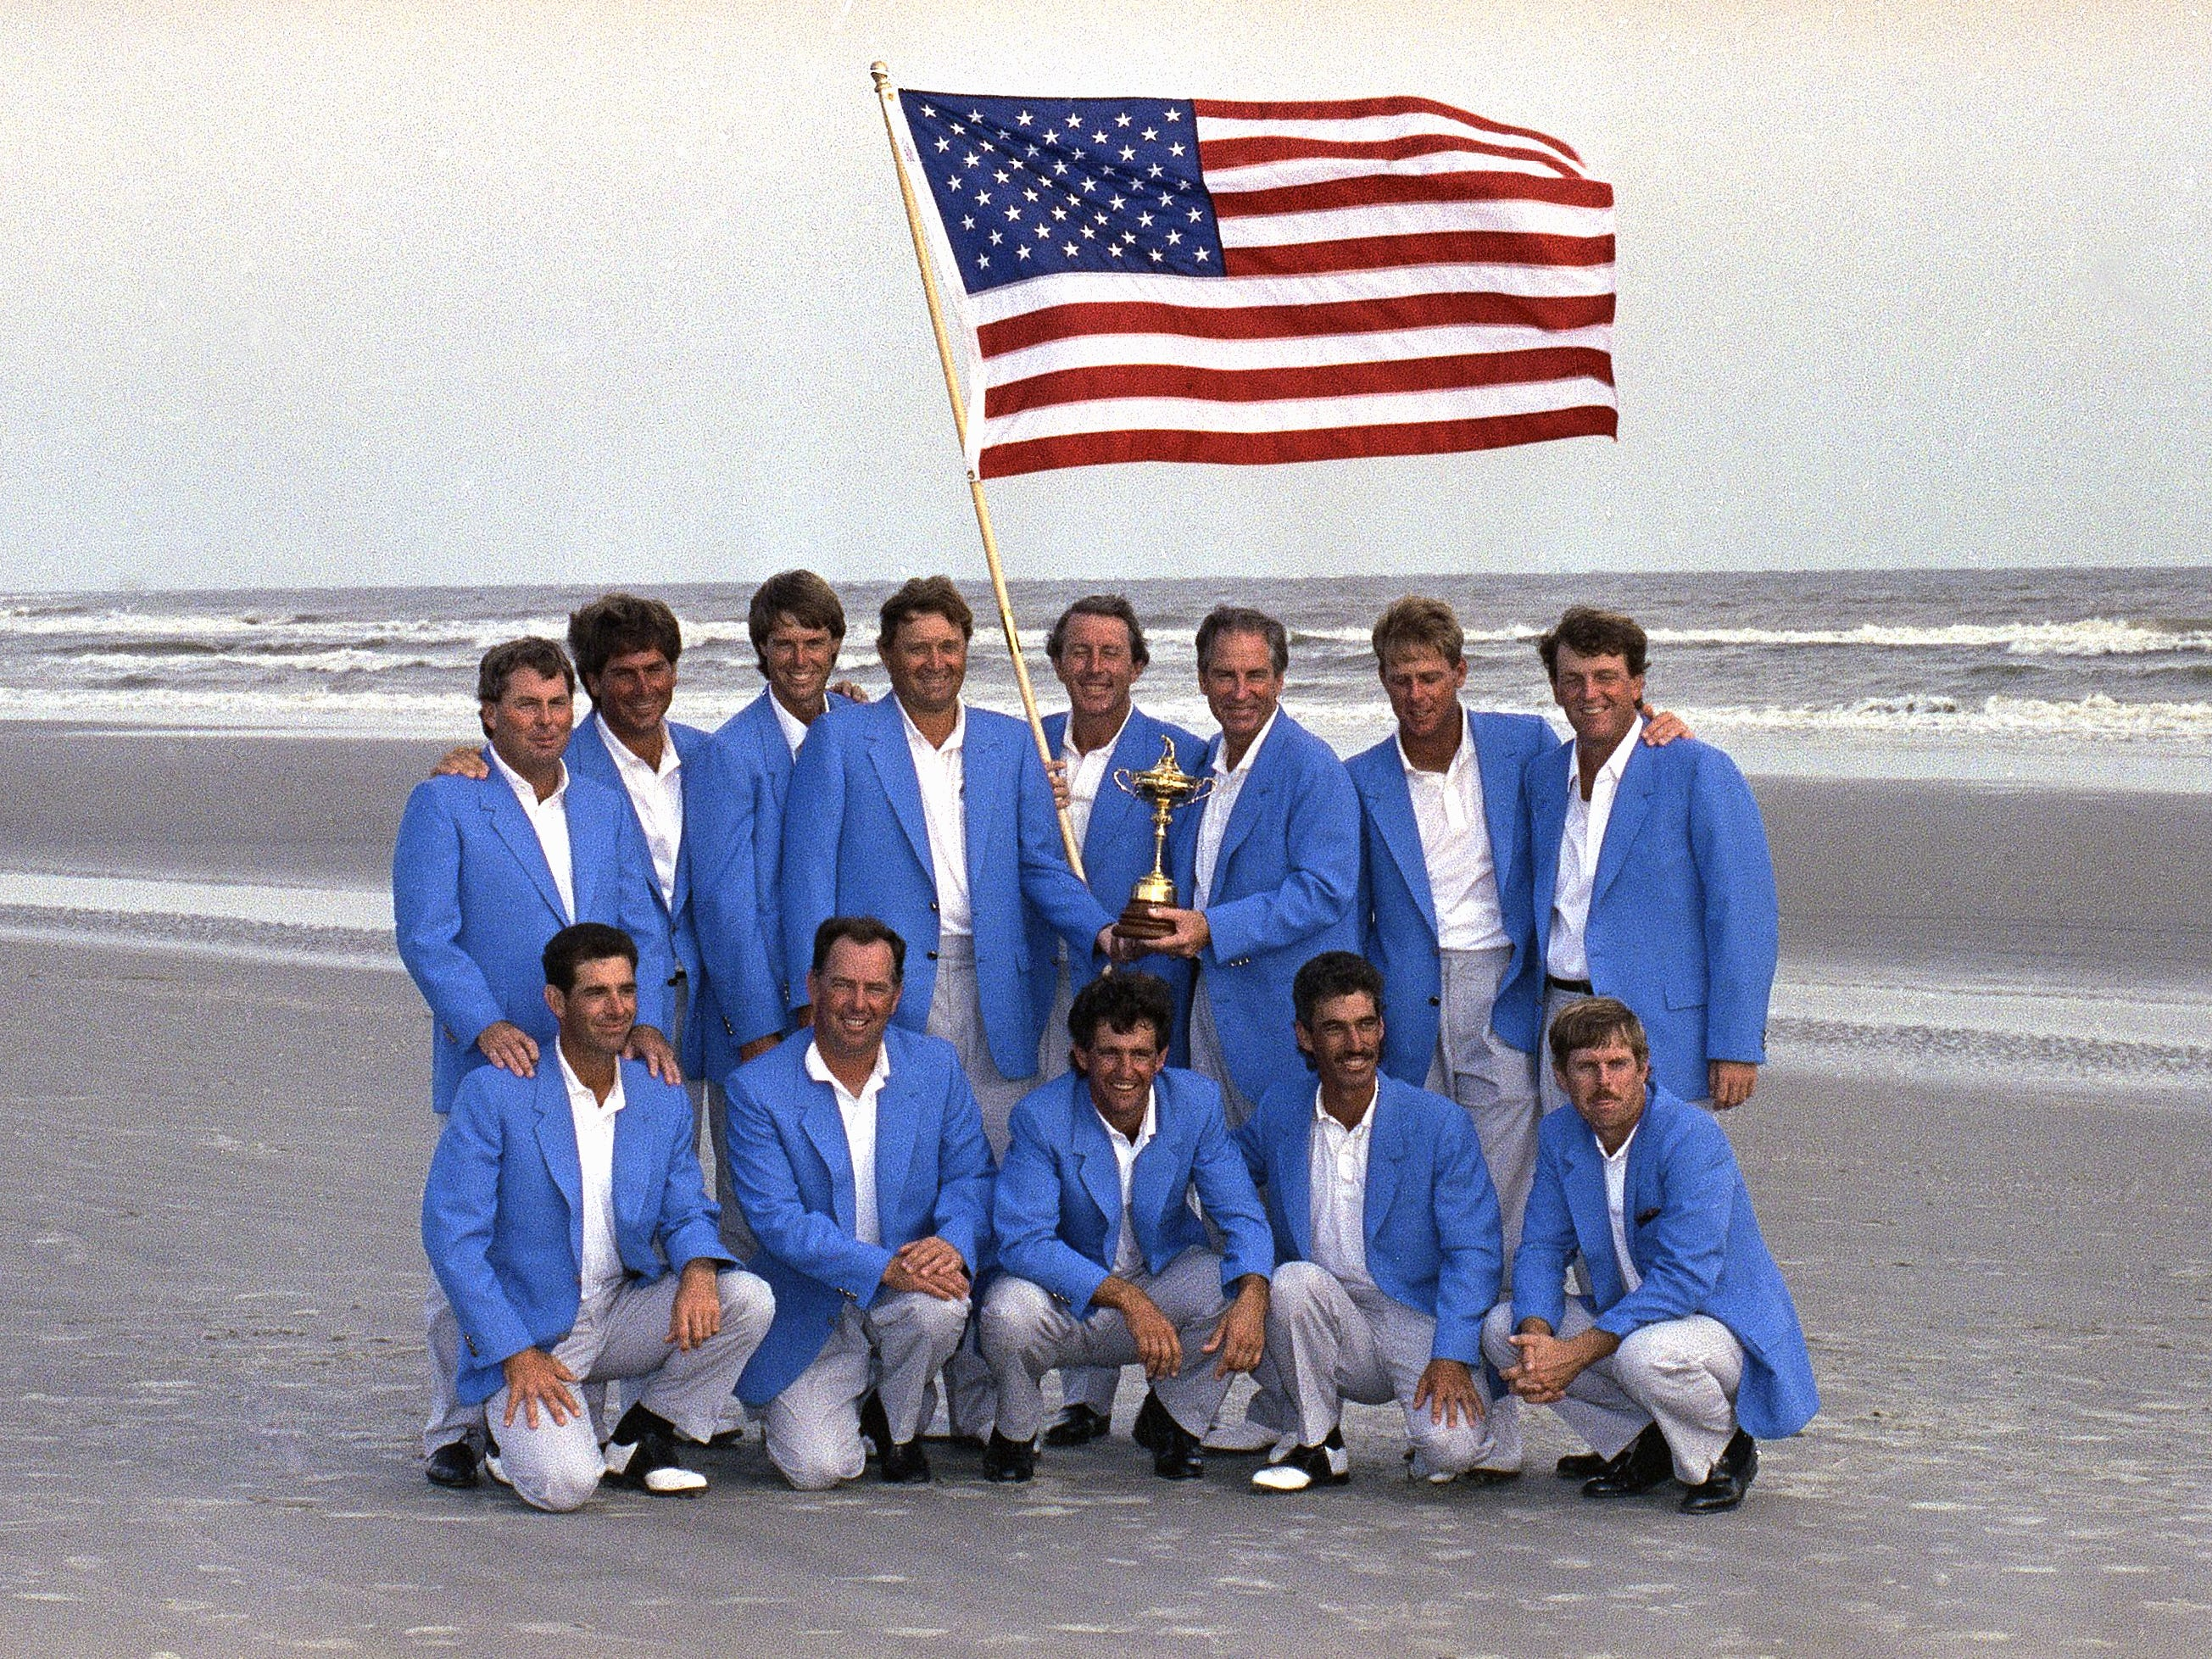 Team USA, 1991: The team poses with the American flag on the beach after defeating Team Europe 14.5-13.5.